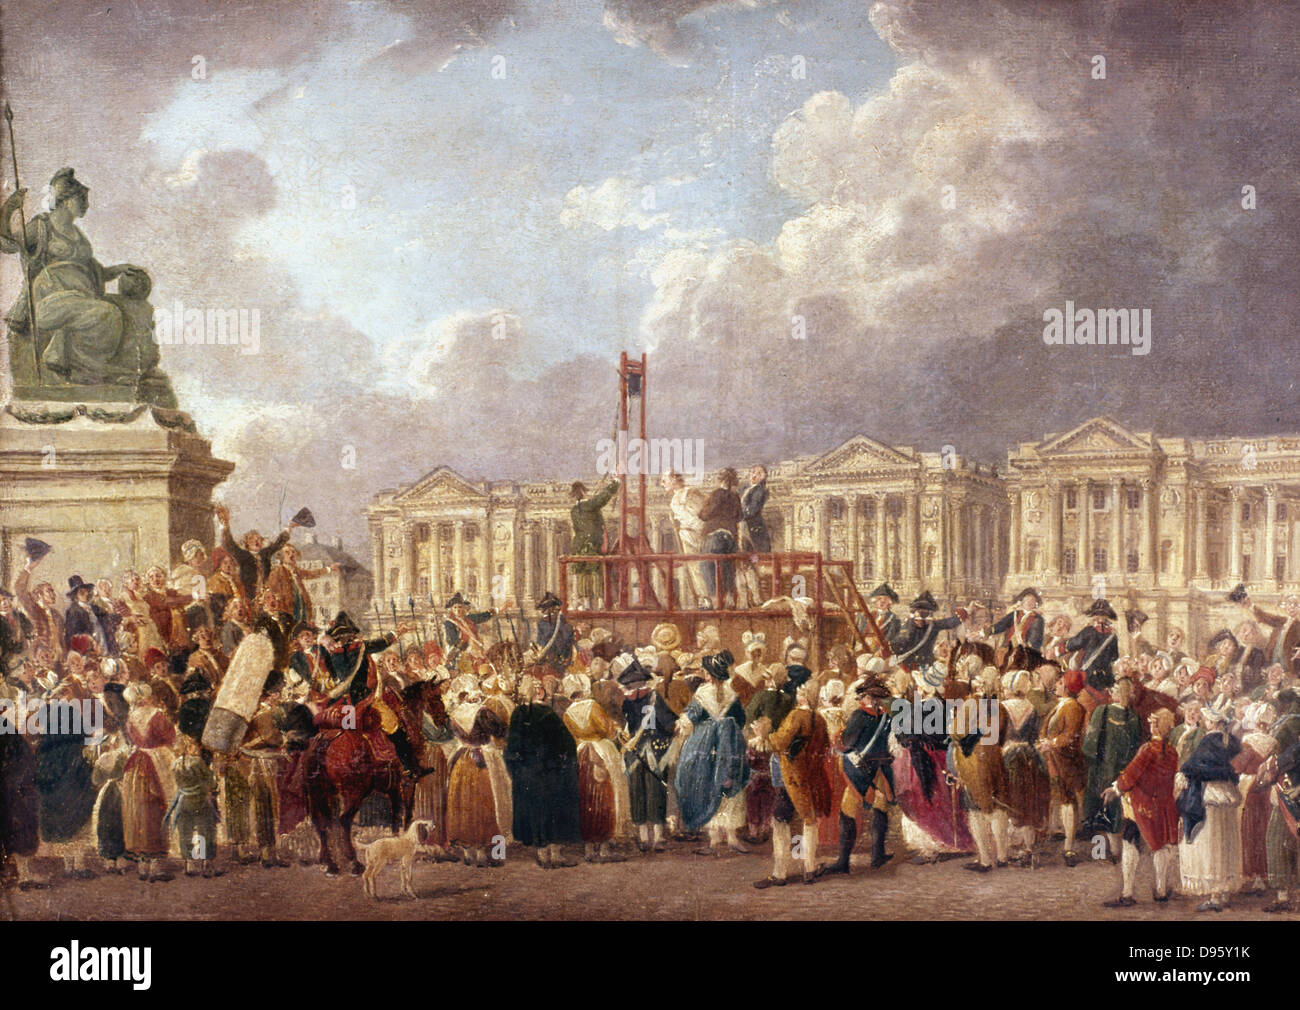 French revolution painting analysis essay